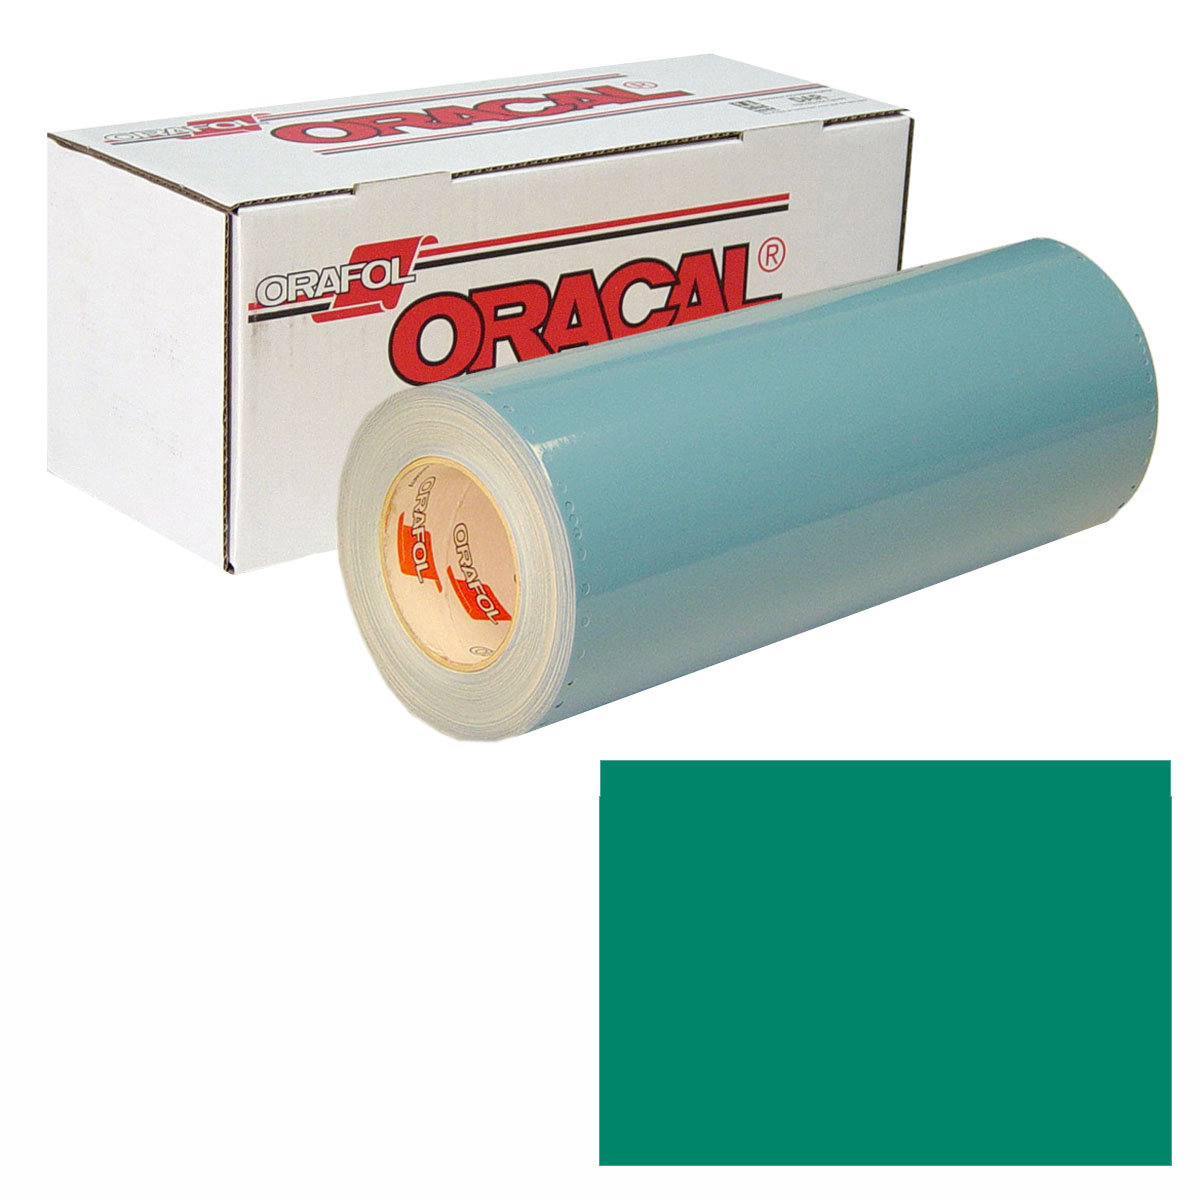 ORACAL 751 Unp 48In X 10Yd 607 Turquoise Gree